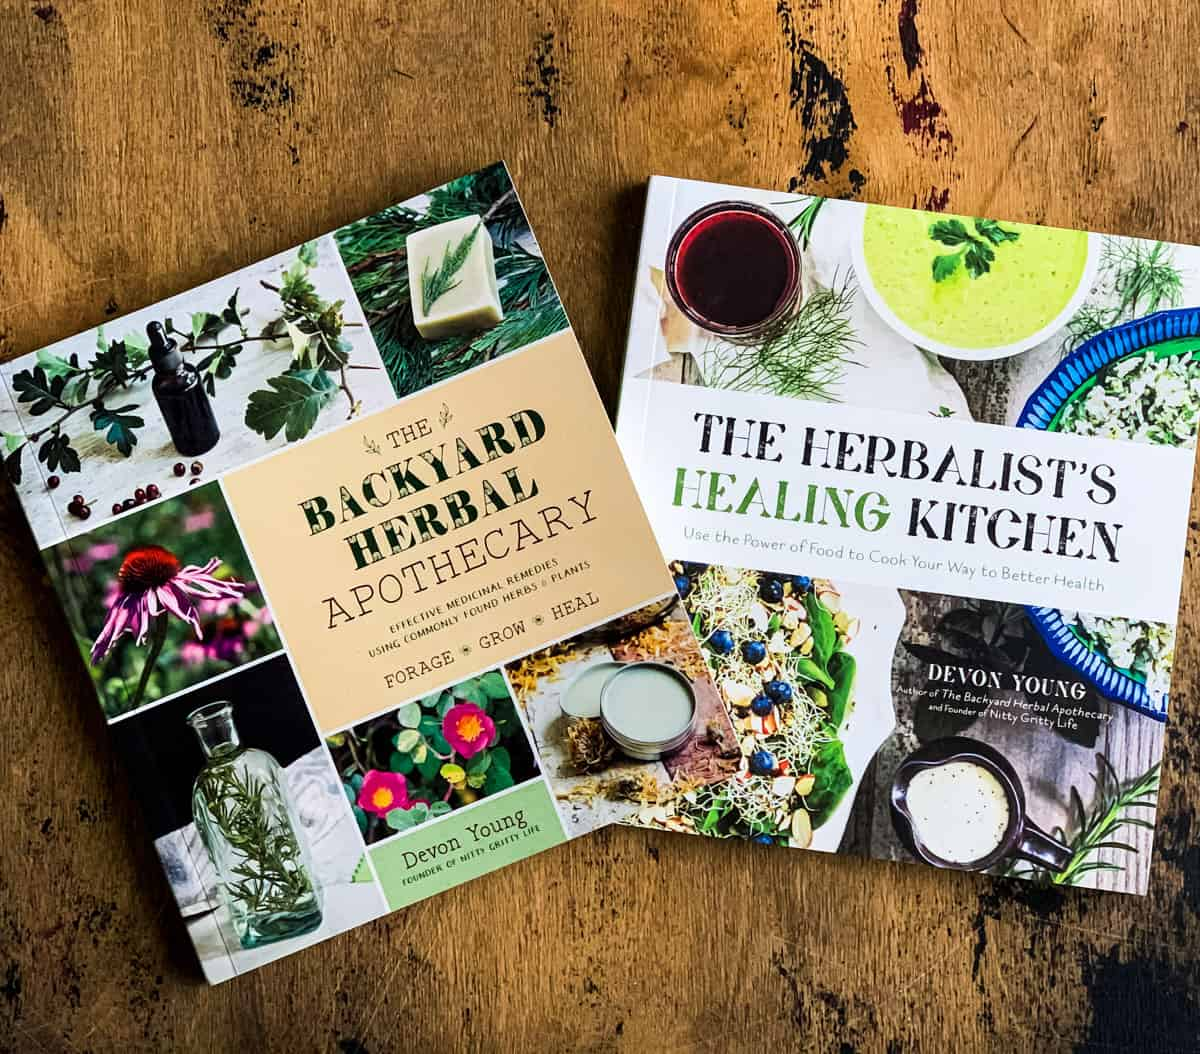 the backyard herbal apothecary and the herbalist's healing kitchen books